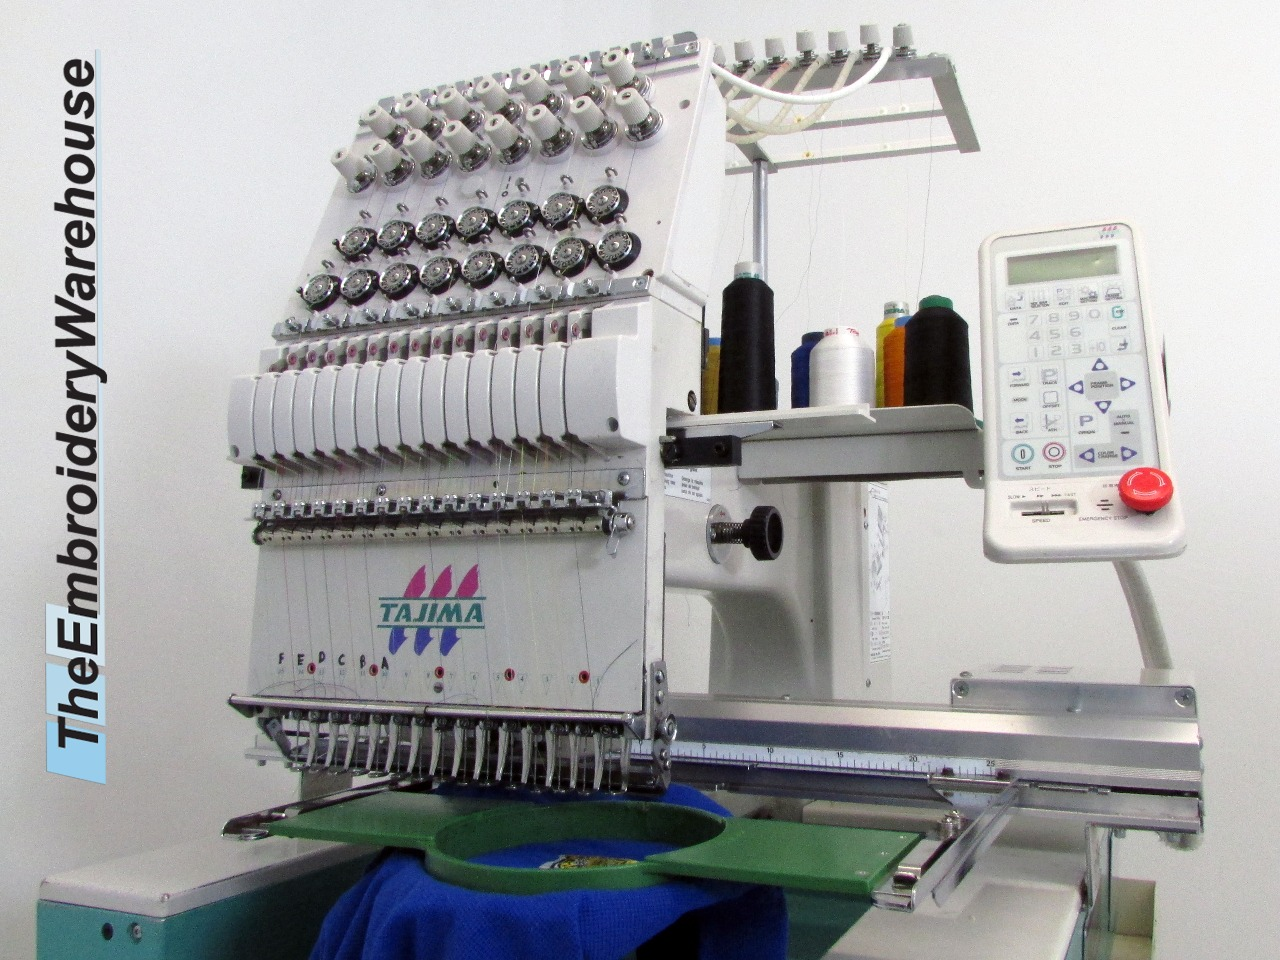 ID#1421 - Tajima NEO Commercial Embroidery Machine.  Year 2002 Heads: 1 Needles: 15 - www.TheEmbroideryWarehouse.com